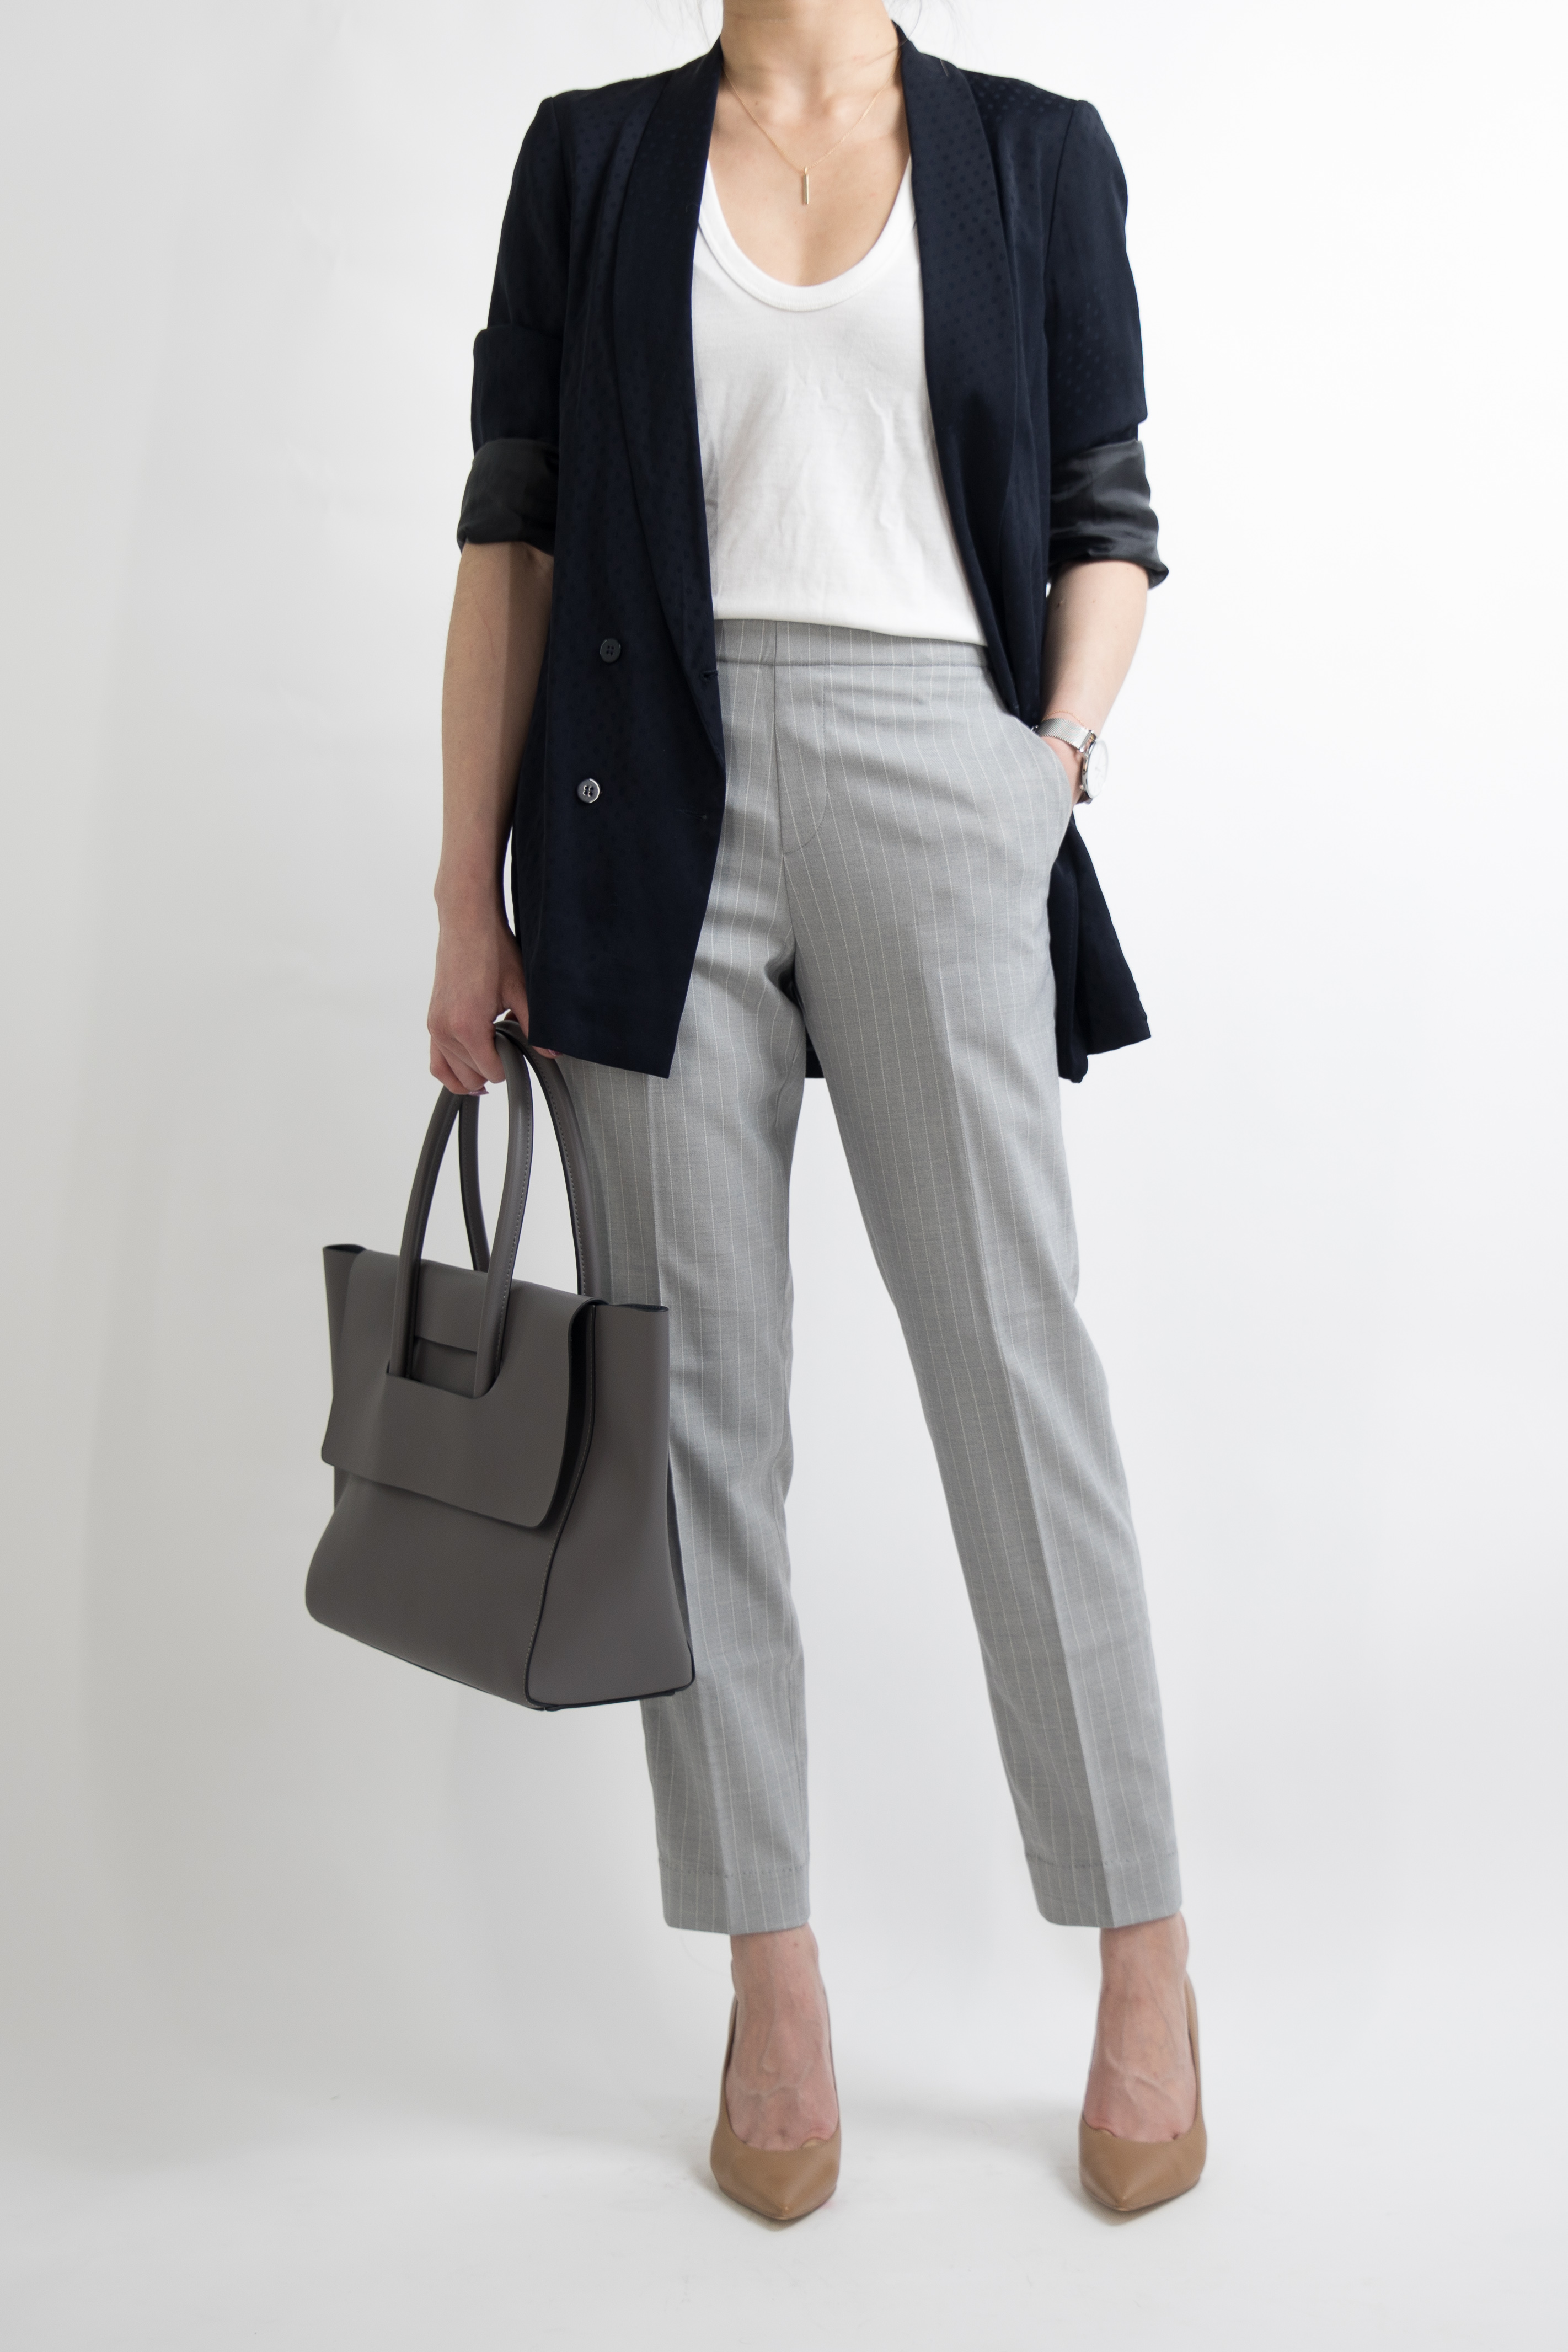 business casual outfits women photo - 1